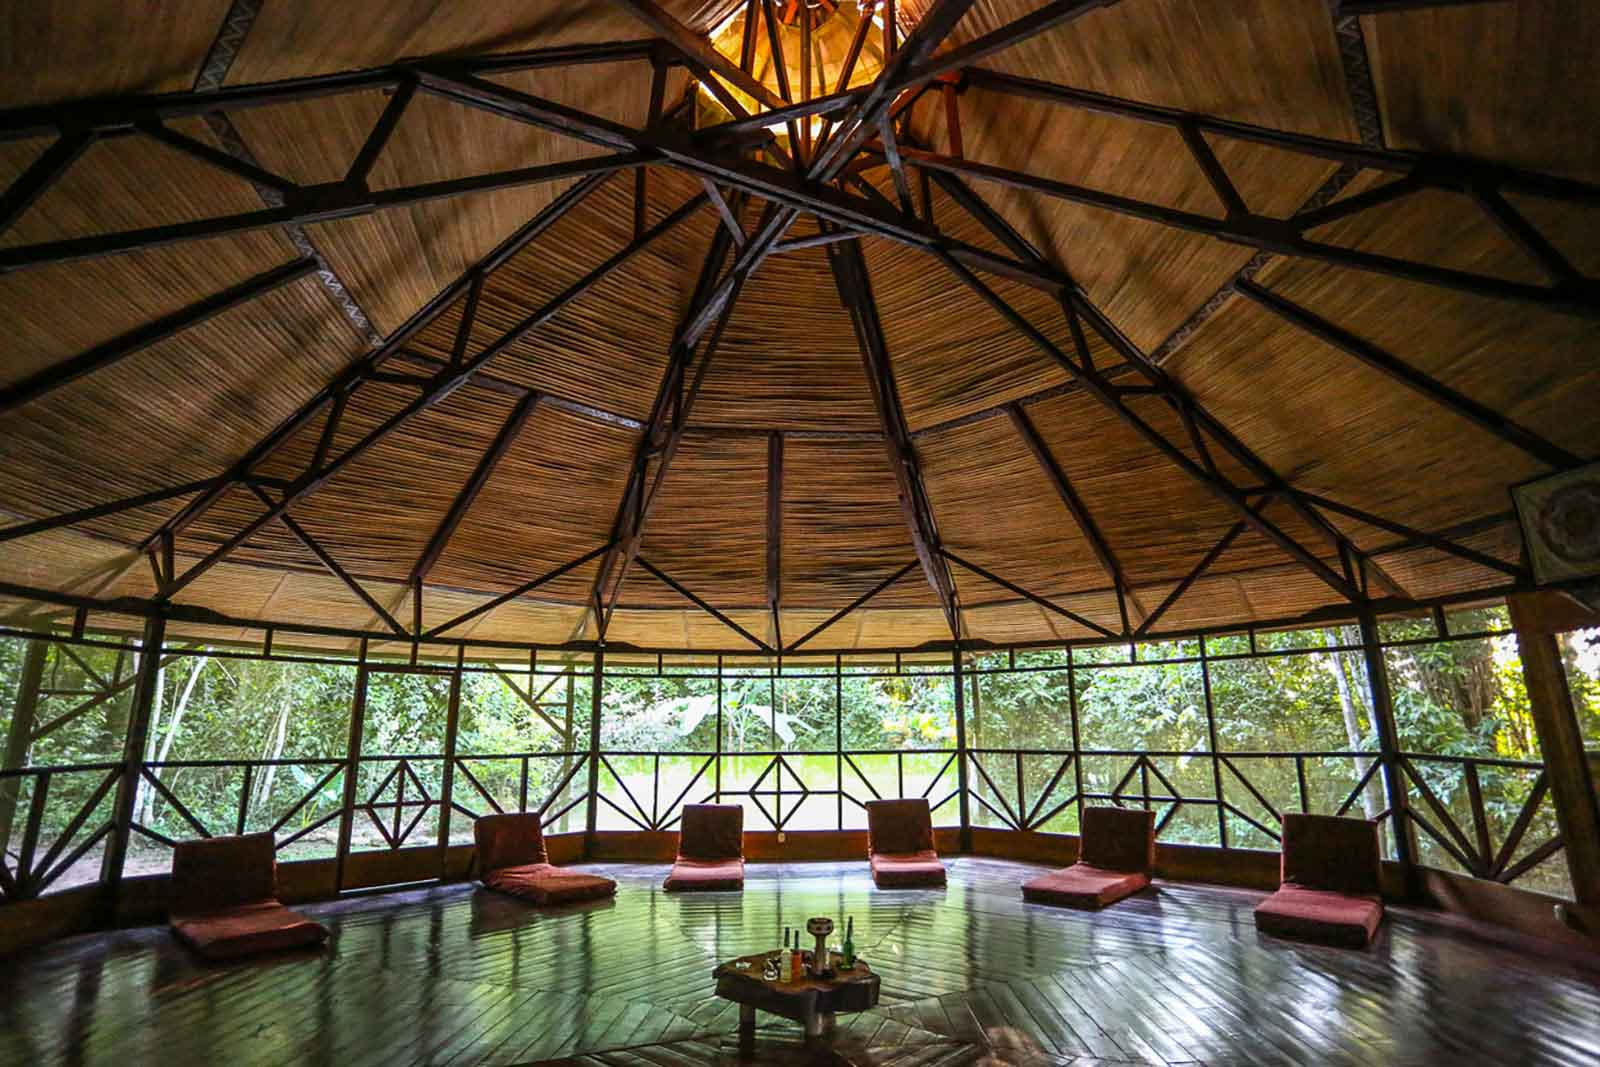 Behold Retreats, a wellness company that specialises in the therapeutic use of plant-based medicine to aid in personal and spiritual growth. Plant medicine retreat, ayahuasca, psychedelics, psilocybin, 5-meo DMT.